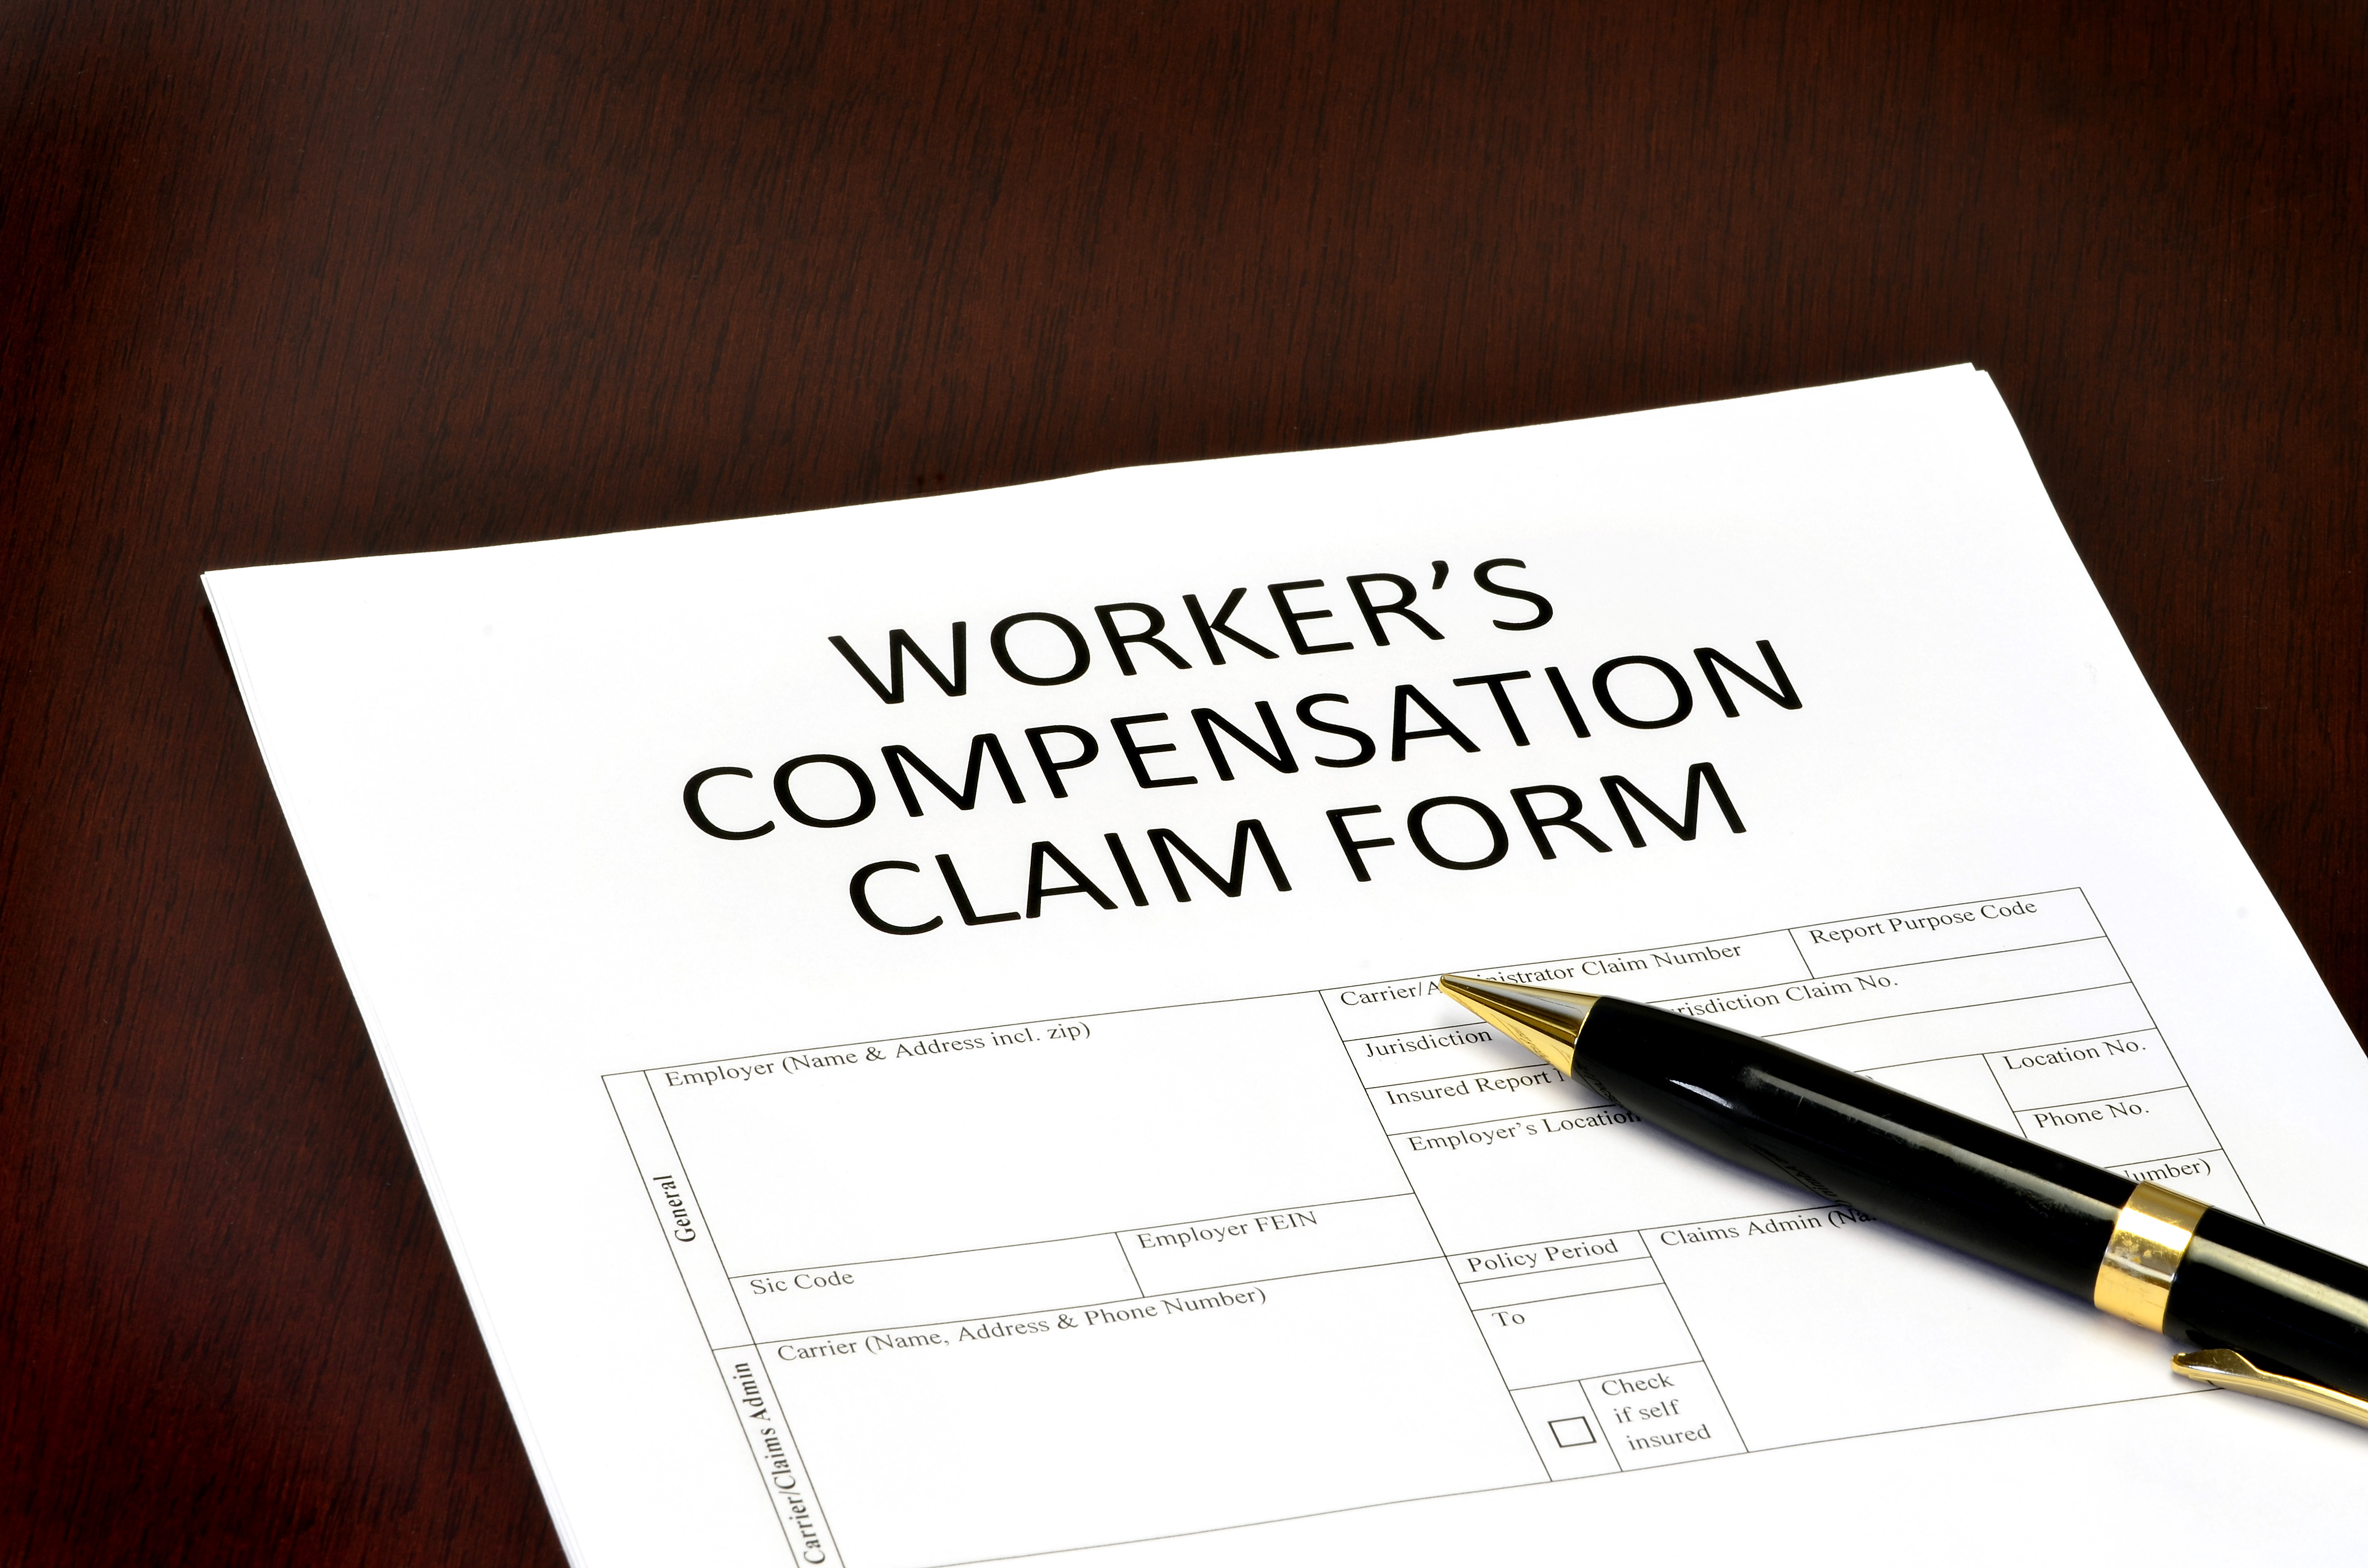 Workers-Comp-Claim-Form-Image.jpg